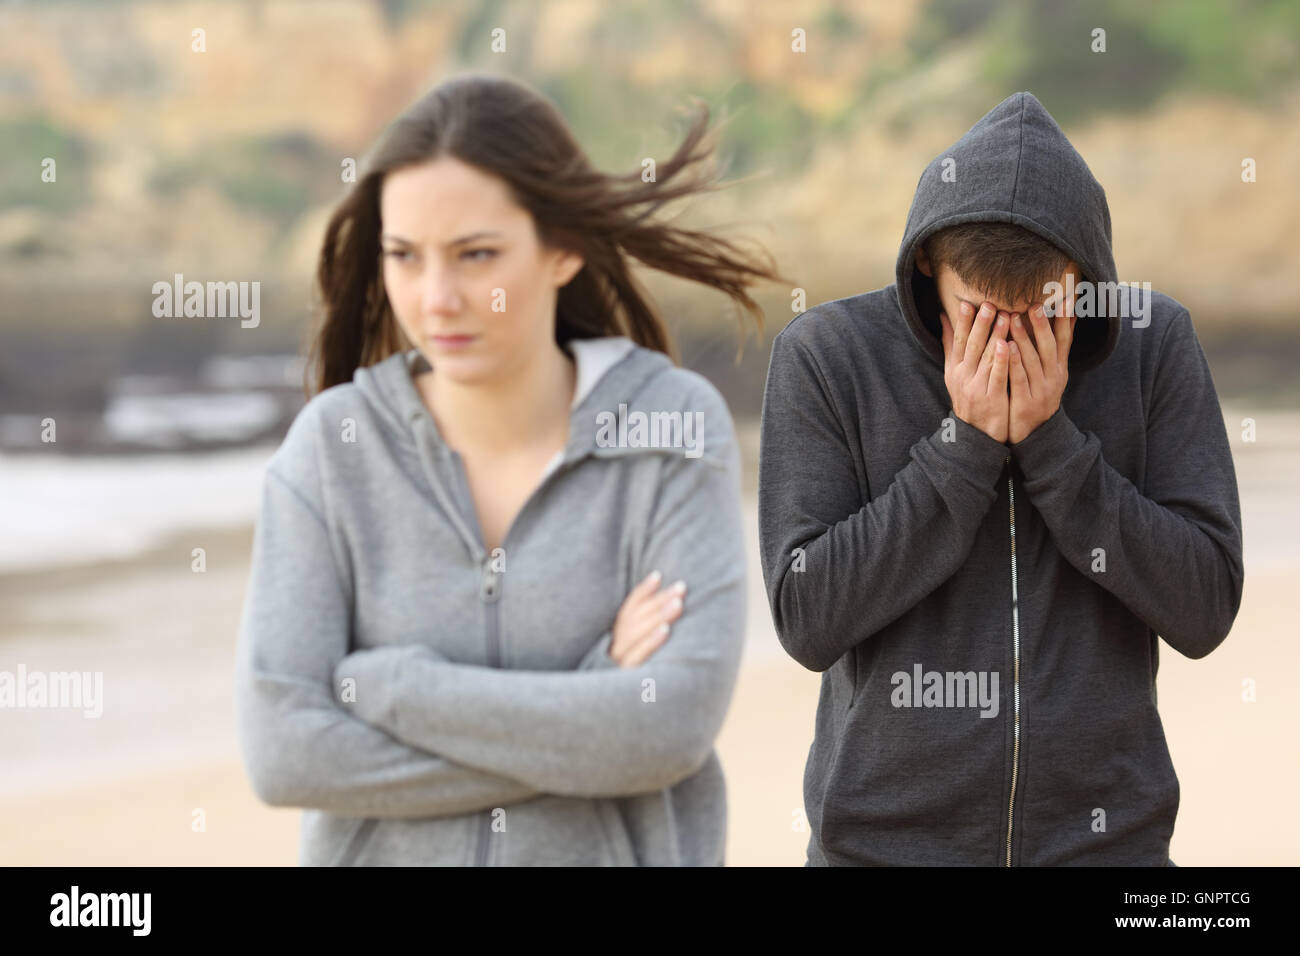 Teenager couple breaking up after argument. The angry girlfriend is rejecting her sad boyfriend - Stock Image